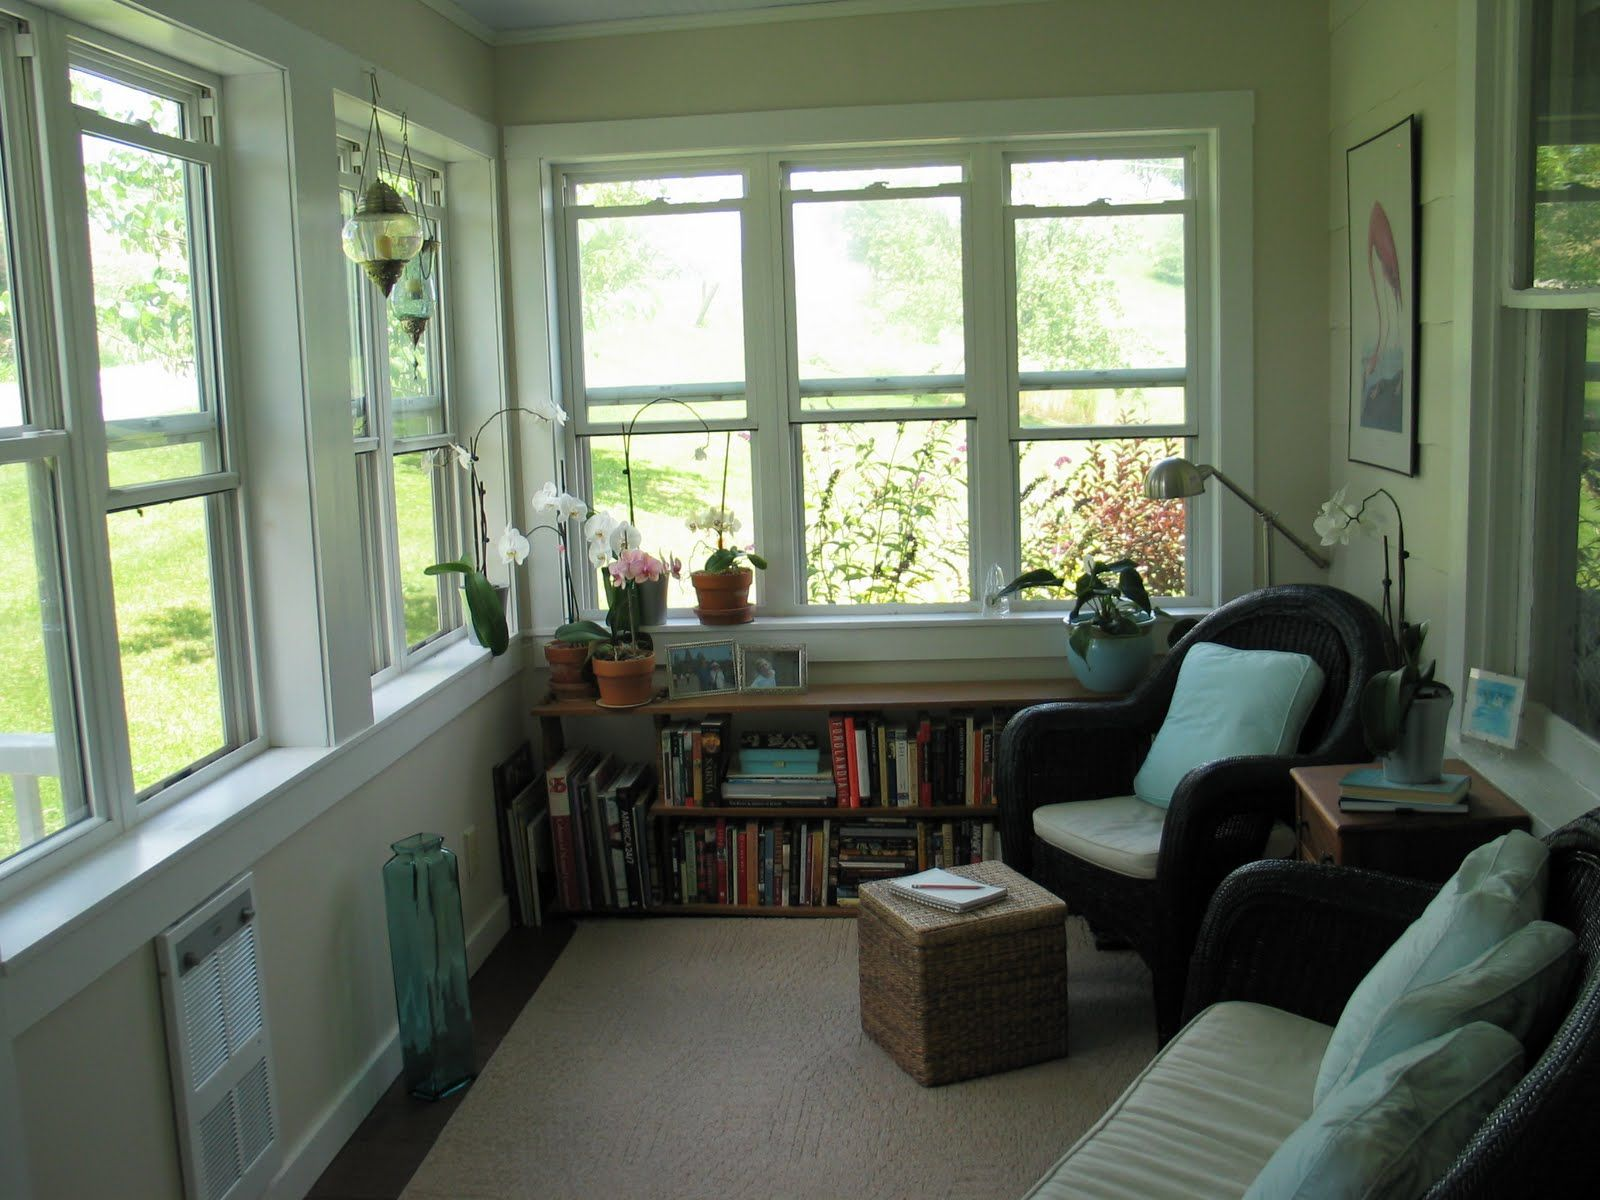 Sun room stunning white wall painted with low bookcase for Enclosed porch furniture ideas